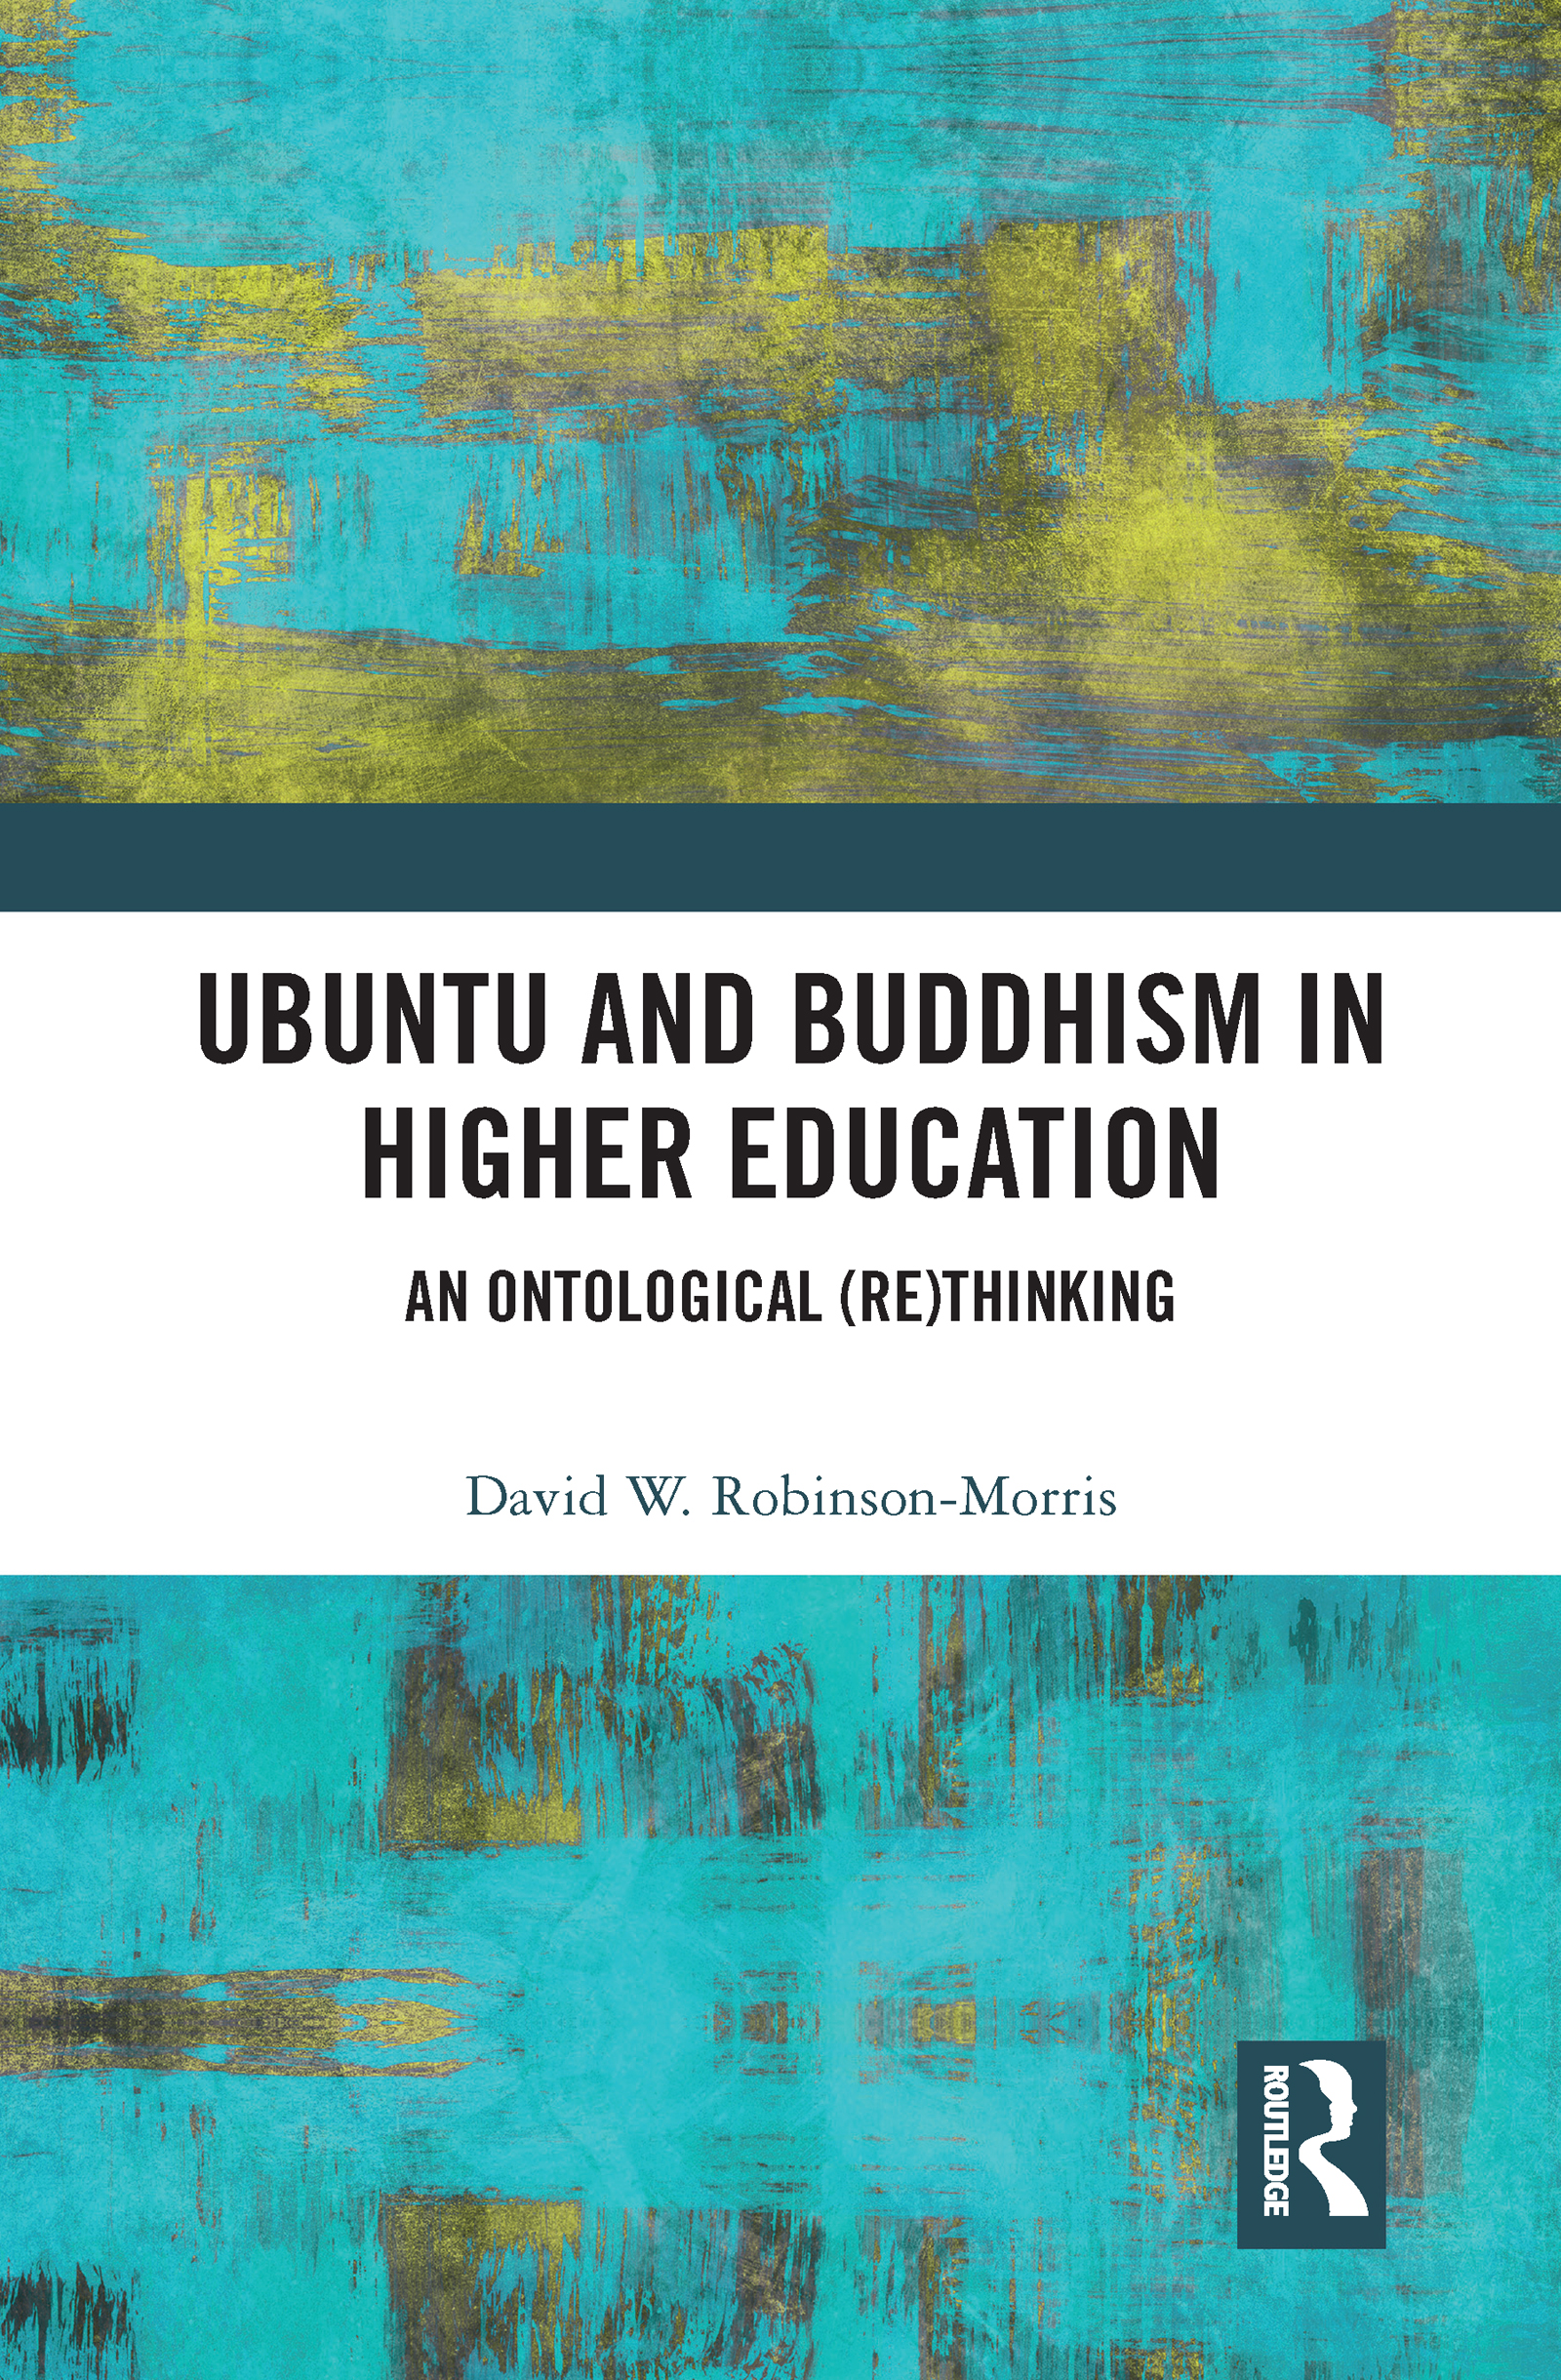 Ubuntu and Buddhism in Higher Education